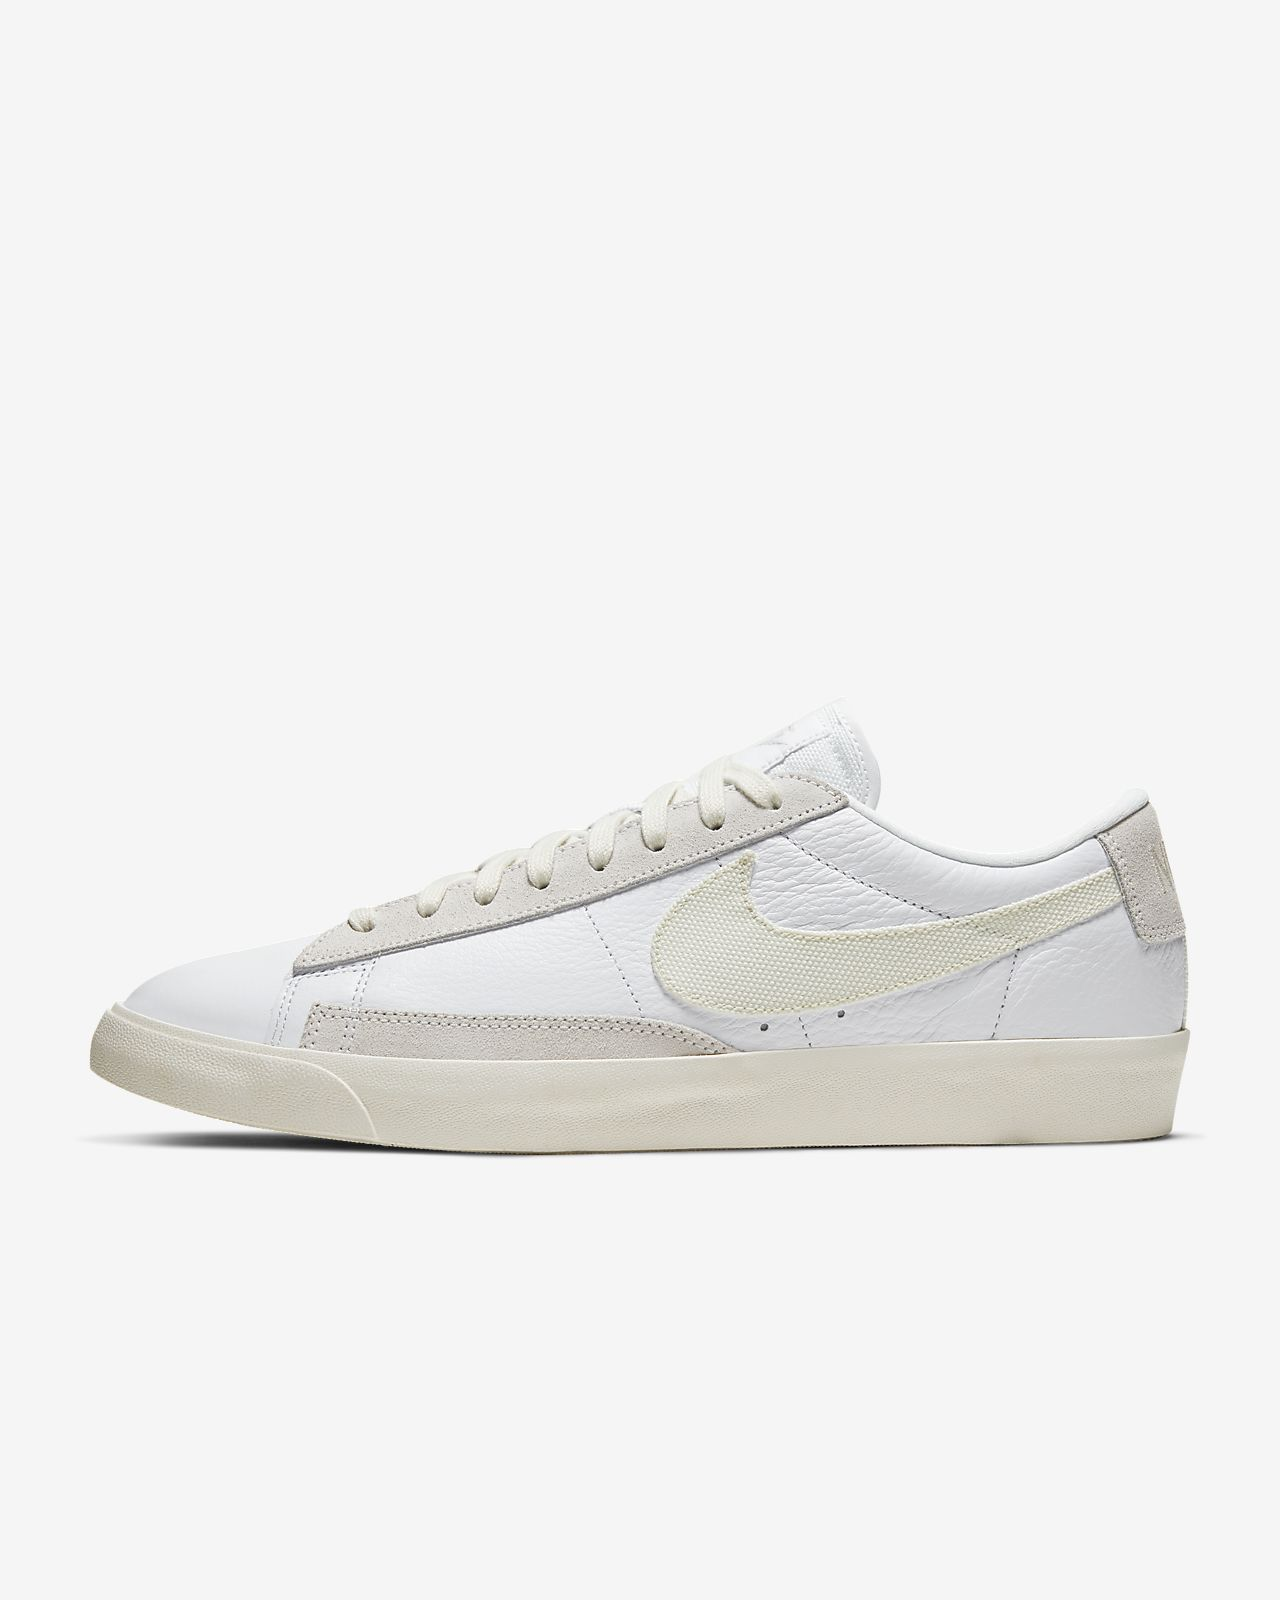 Chaussure Nike Blazer Low Leather